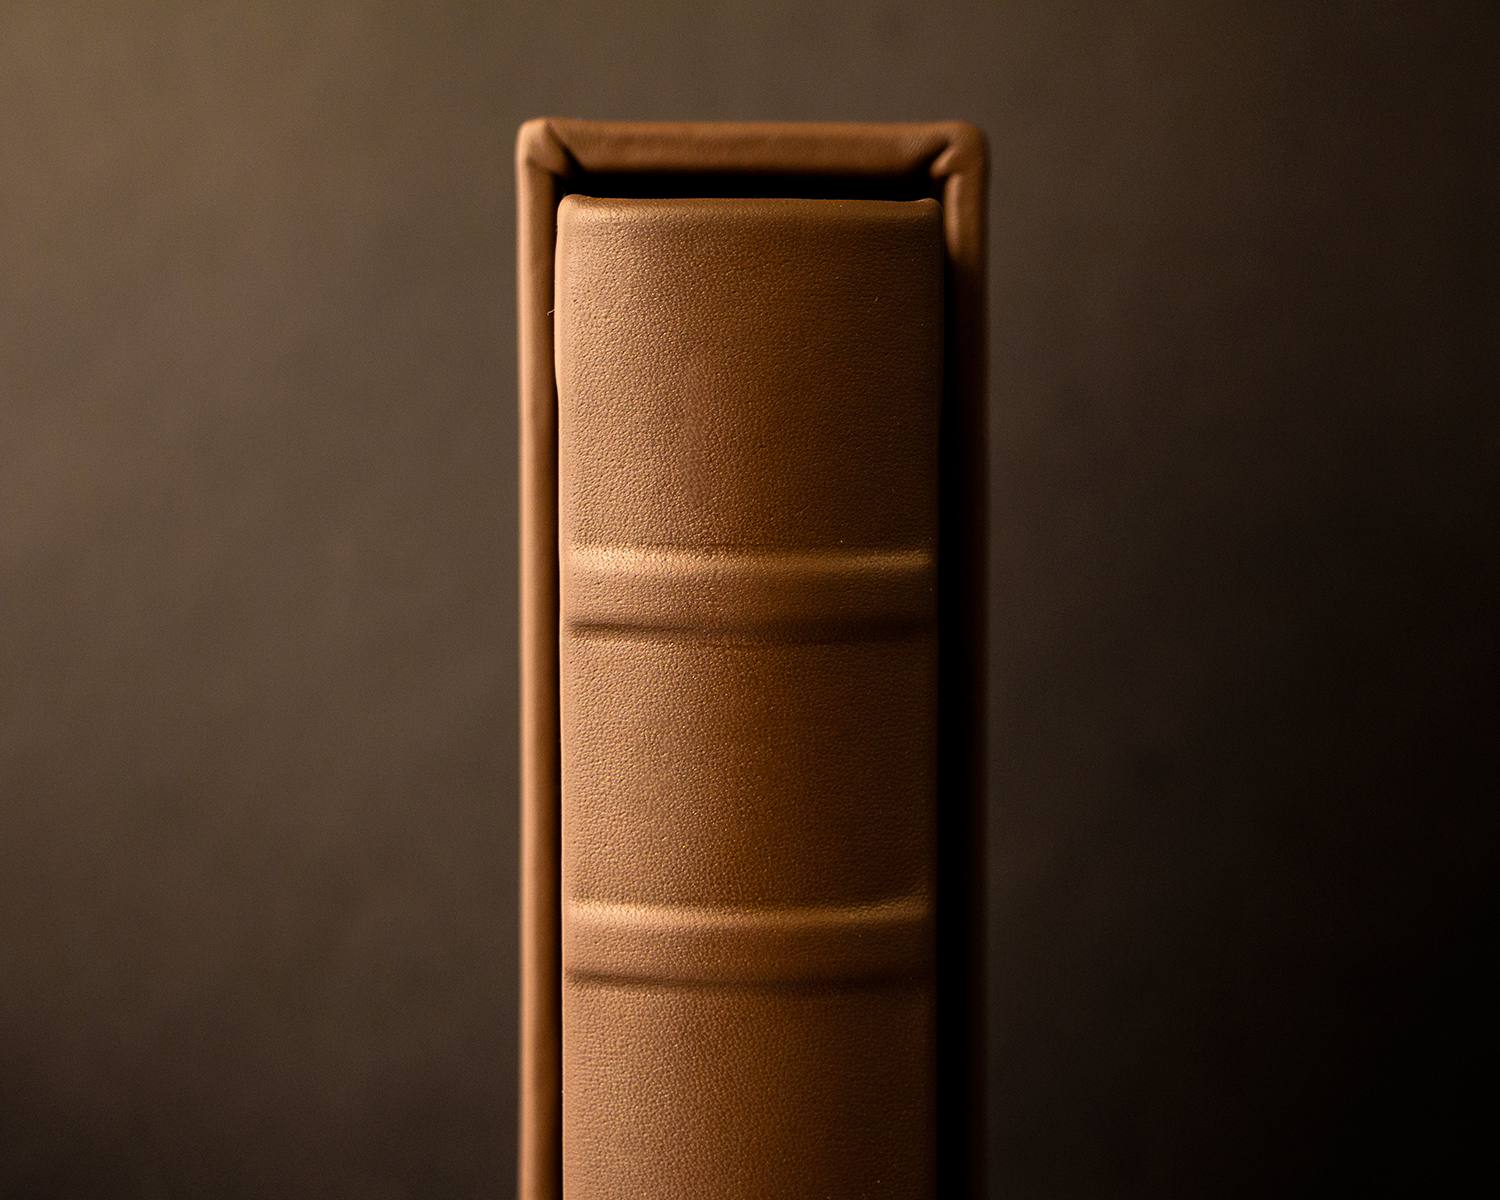 Album In Slipcase Featuring Rounded Spine With Hubs (And No Tooling On The Hubs)